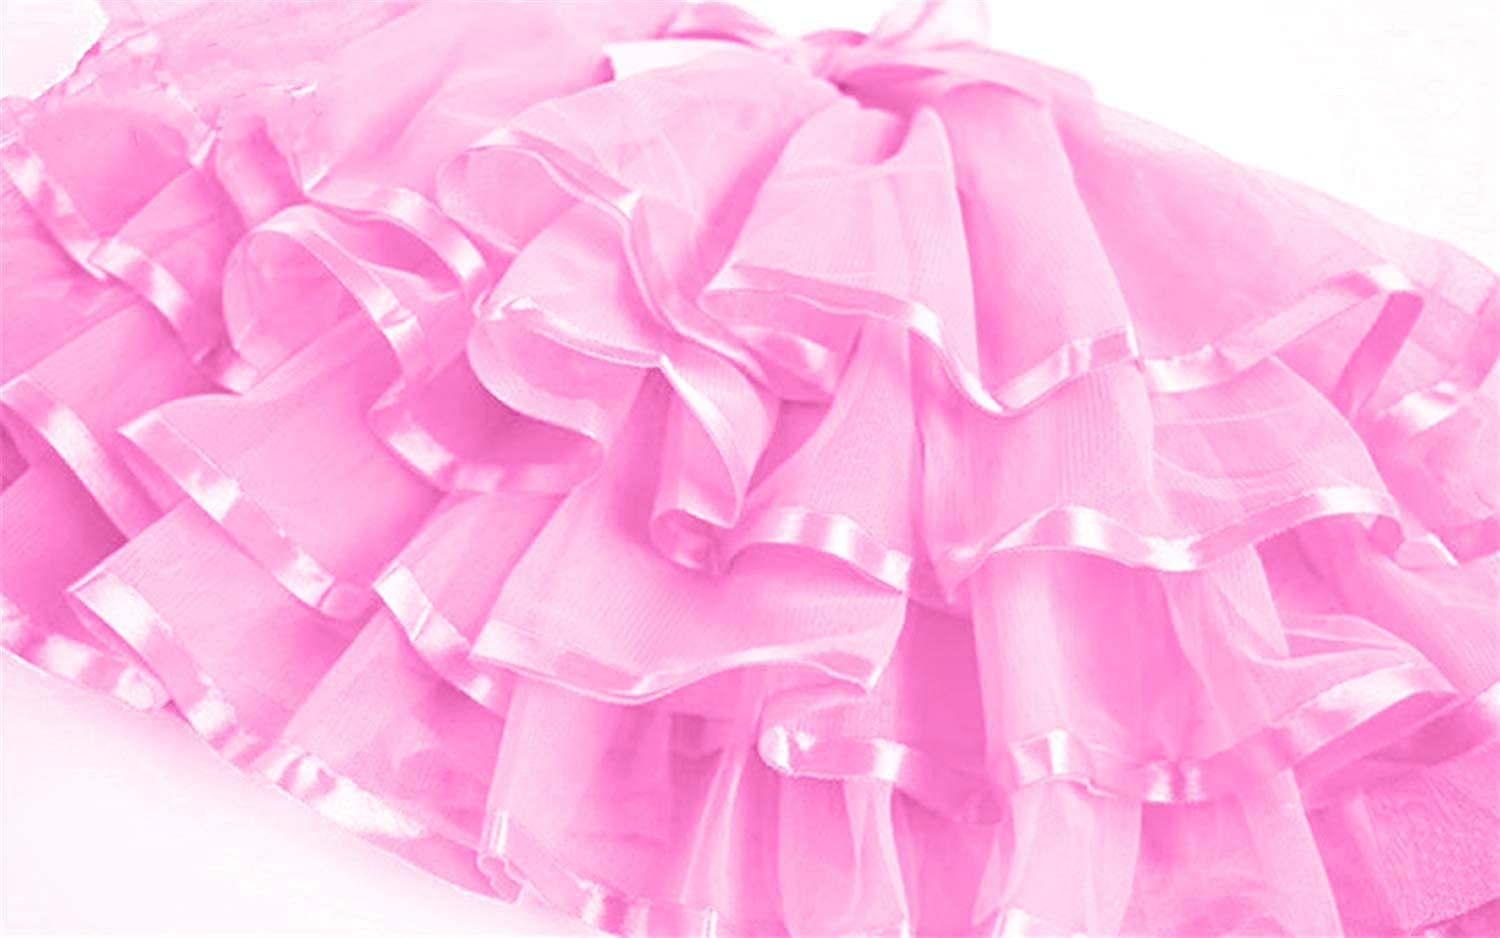 storeofbaby Little Big Girls Tulle Tutu Skirt 4-Layered Holiday Party Dress Up Skirts 2-13 Years